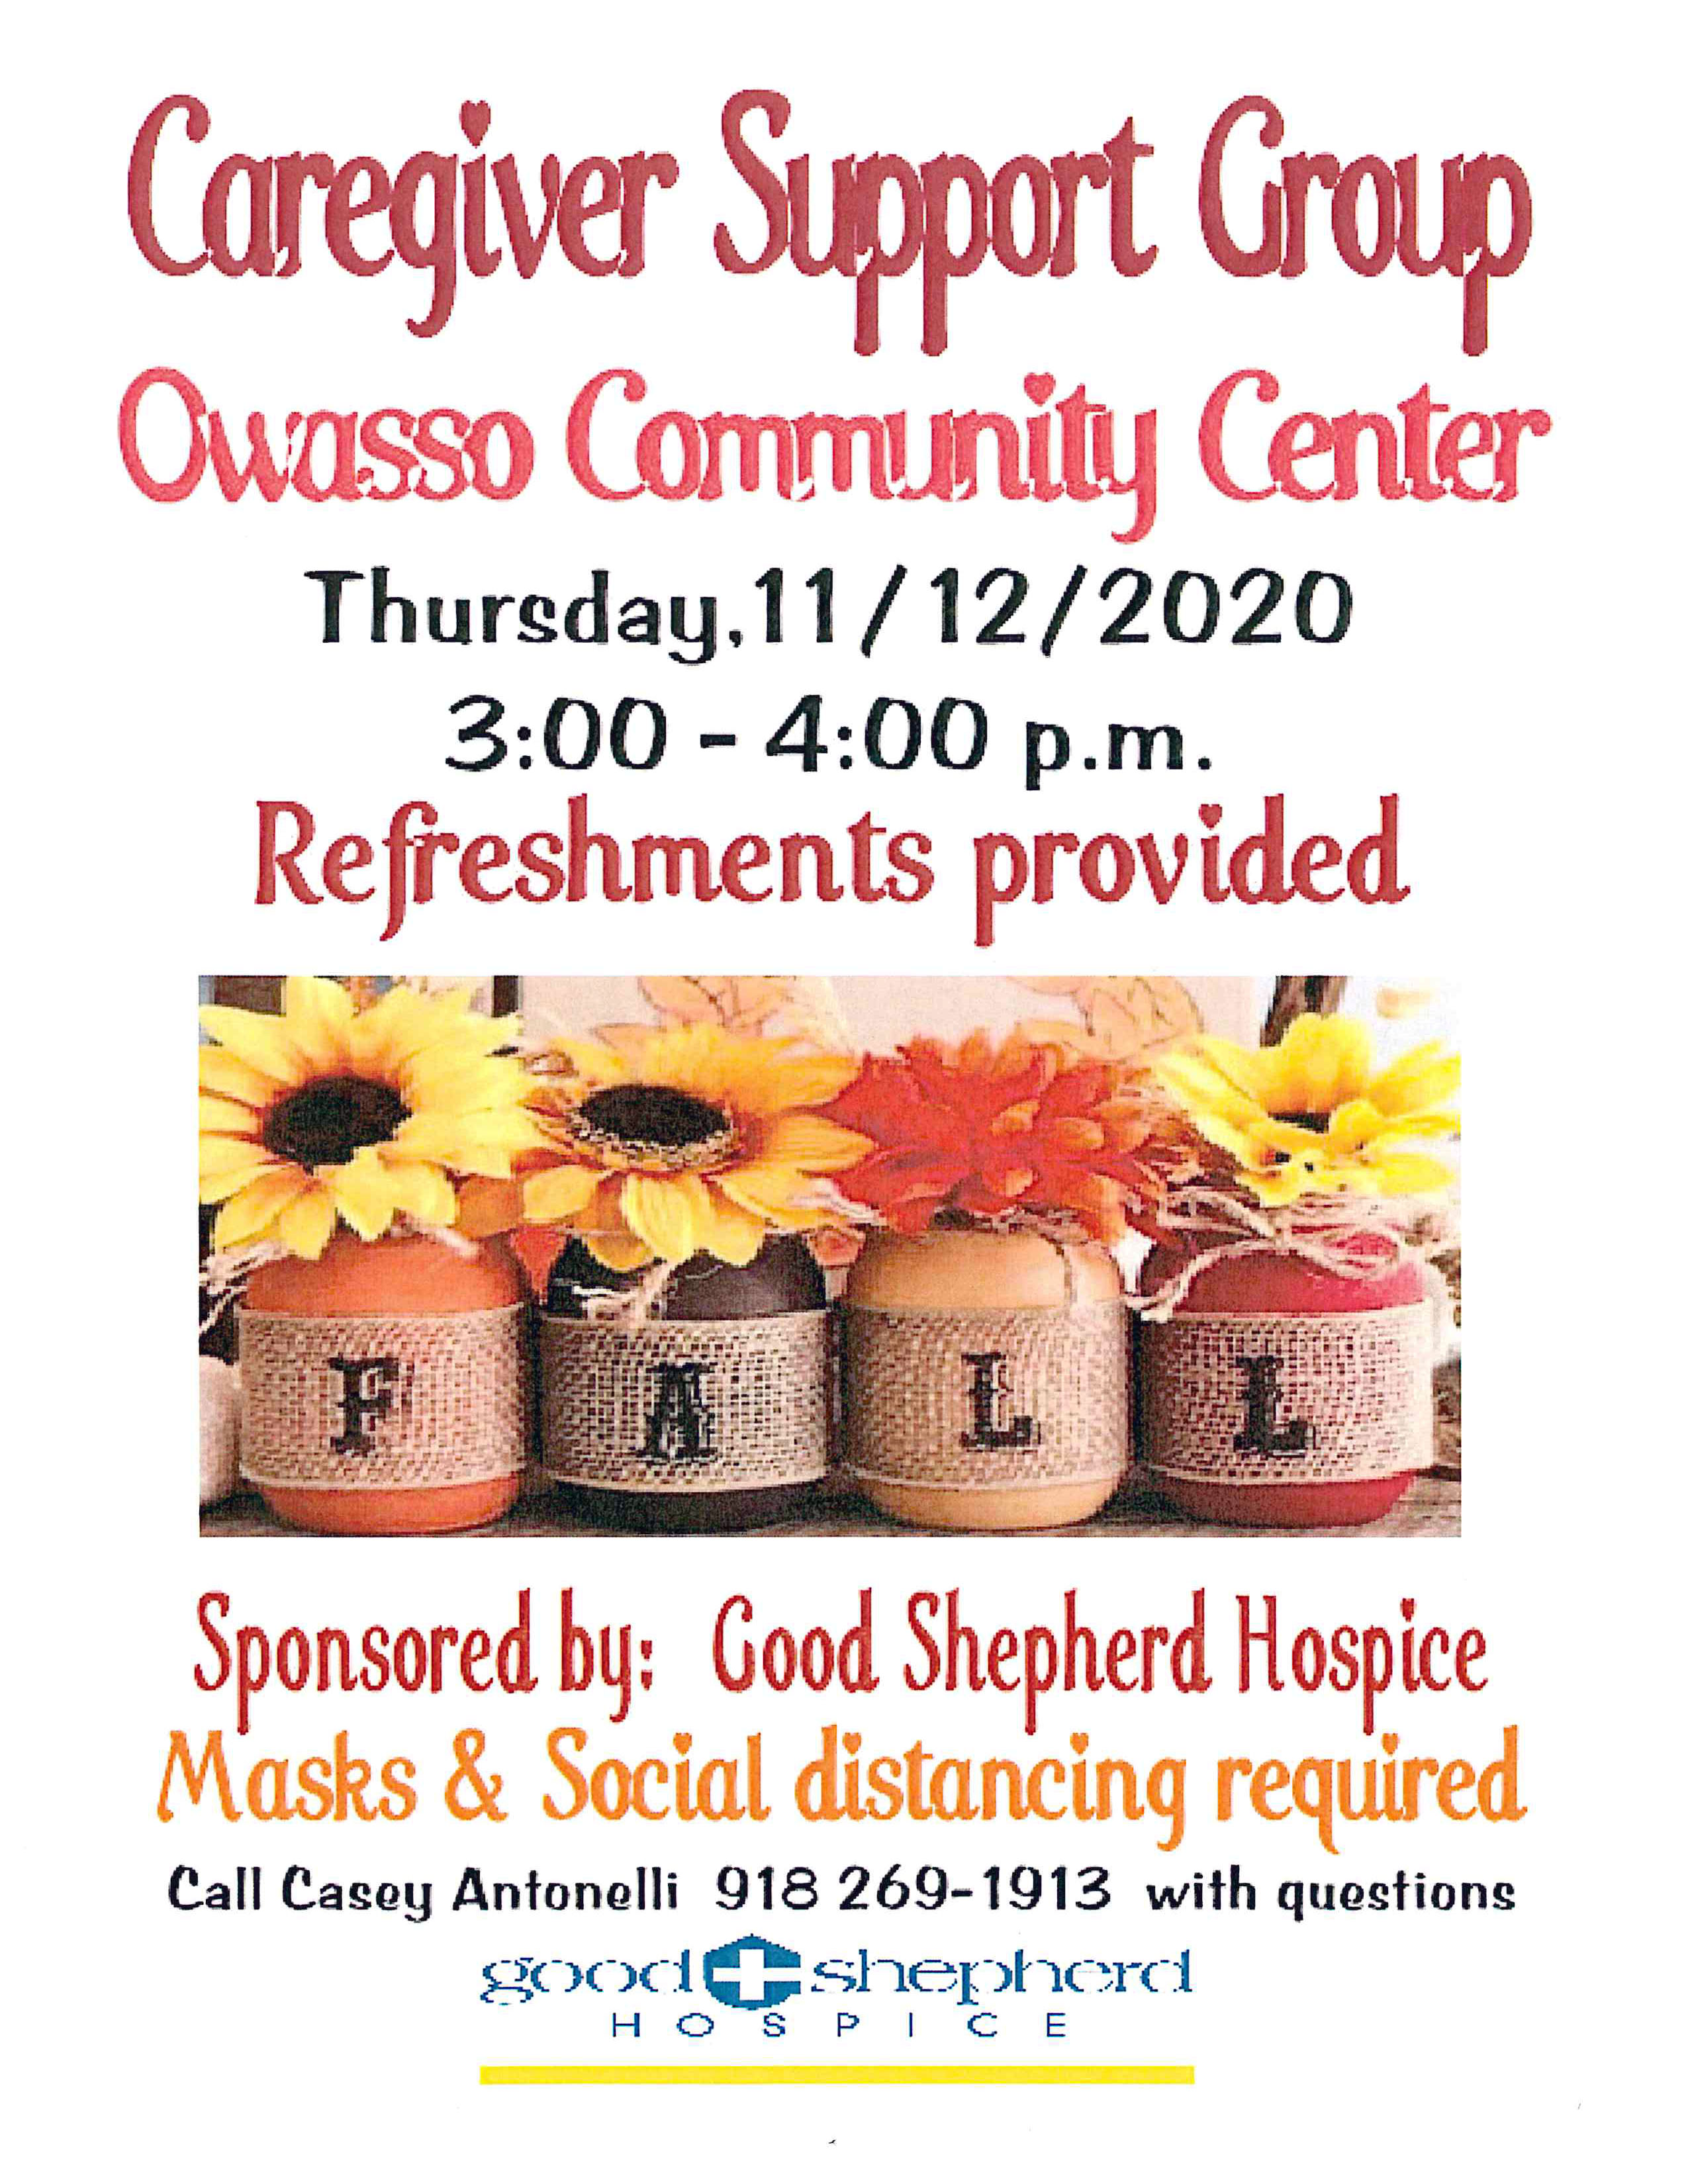 Caregiver Support Group Event Scheduled November 12th